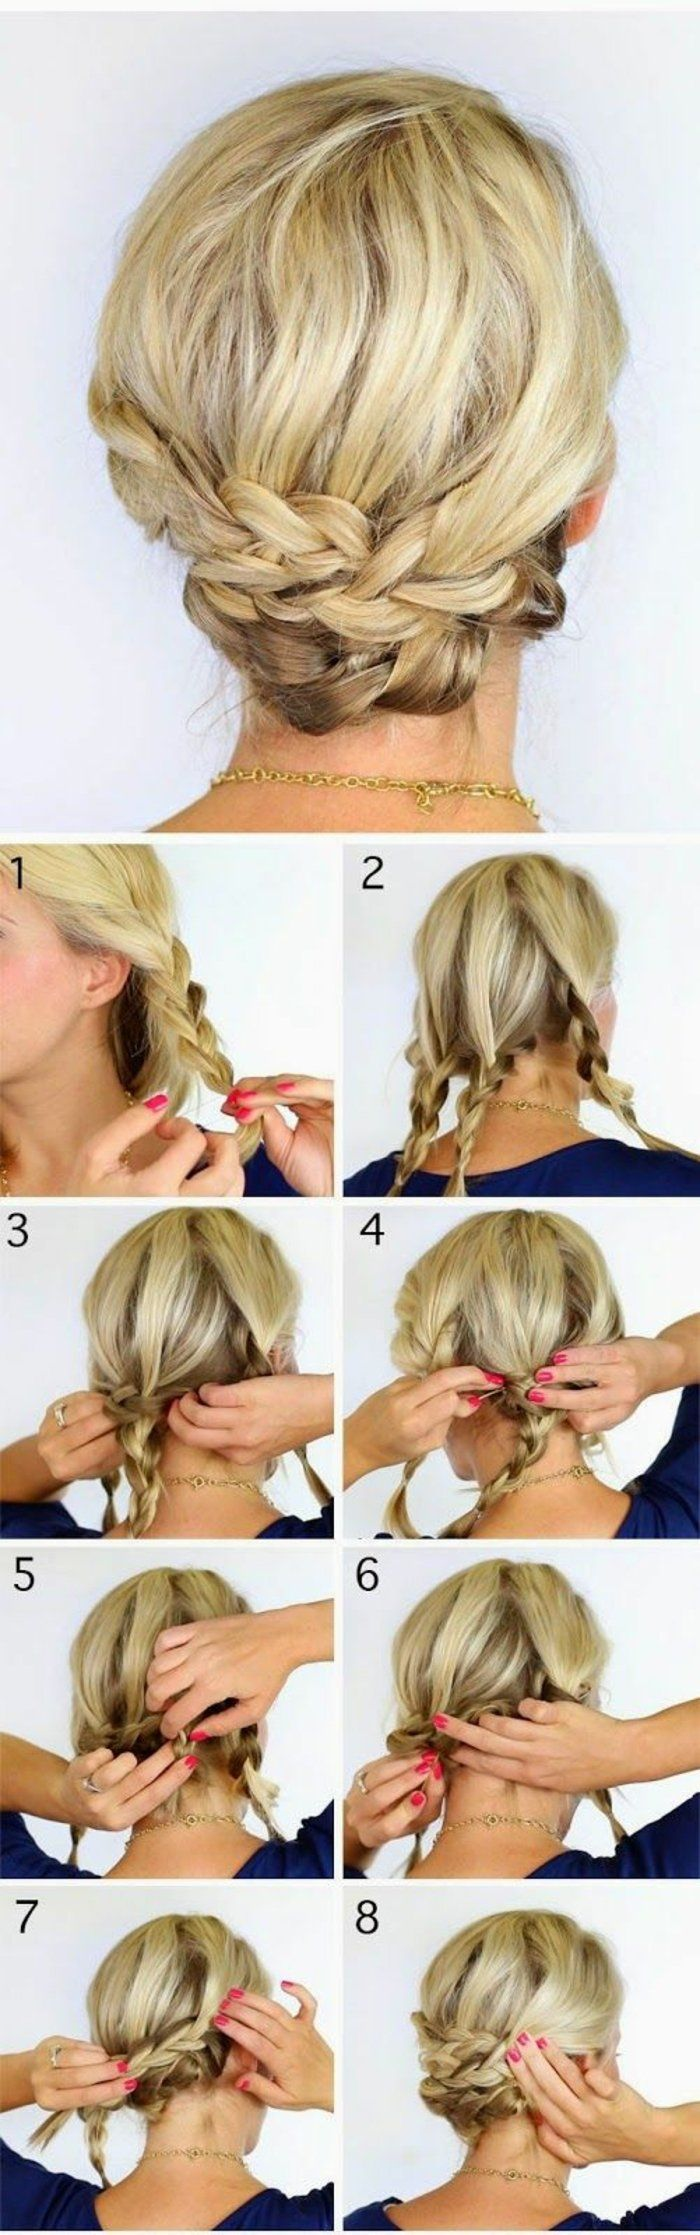 25 best ideas about coiffure chignon on pinterest wedding low buns messy bun updo and messy updo - Coiffure chignon facile ...